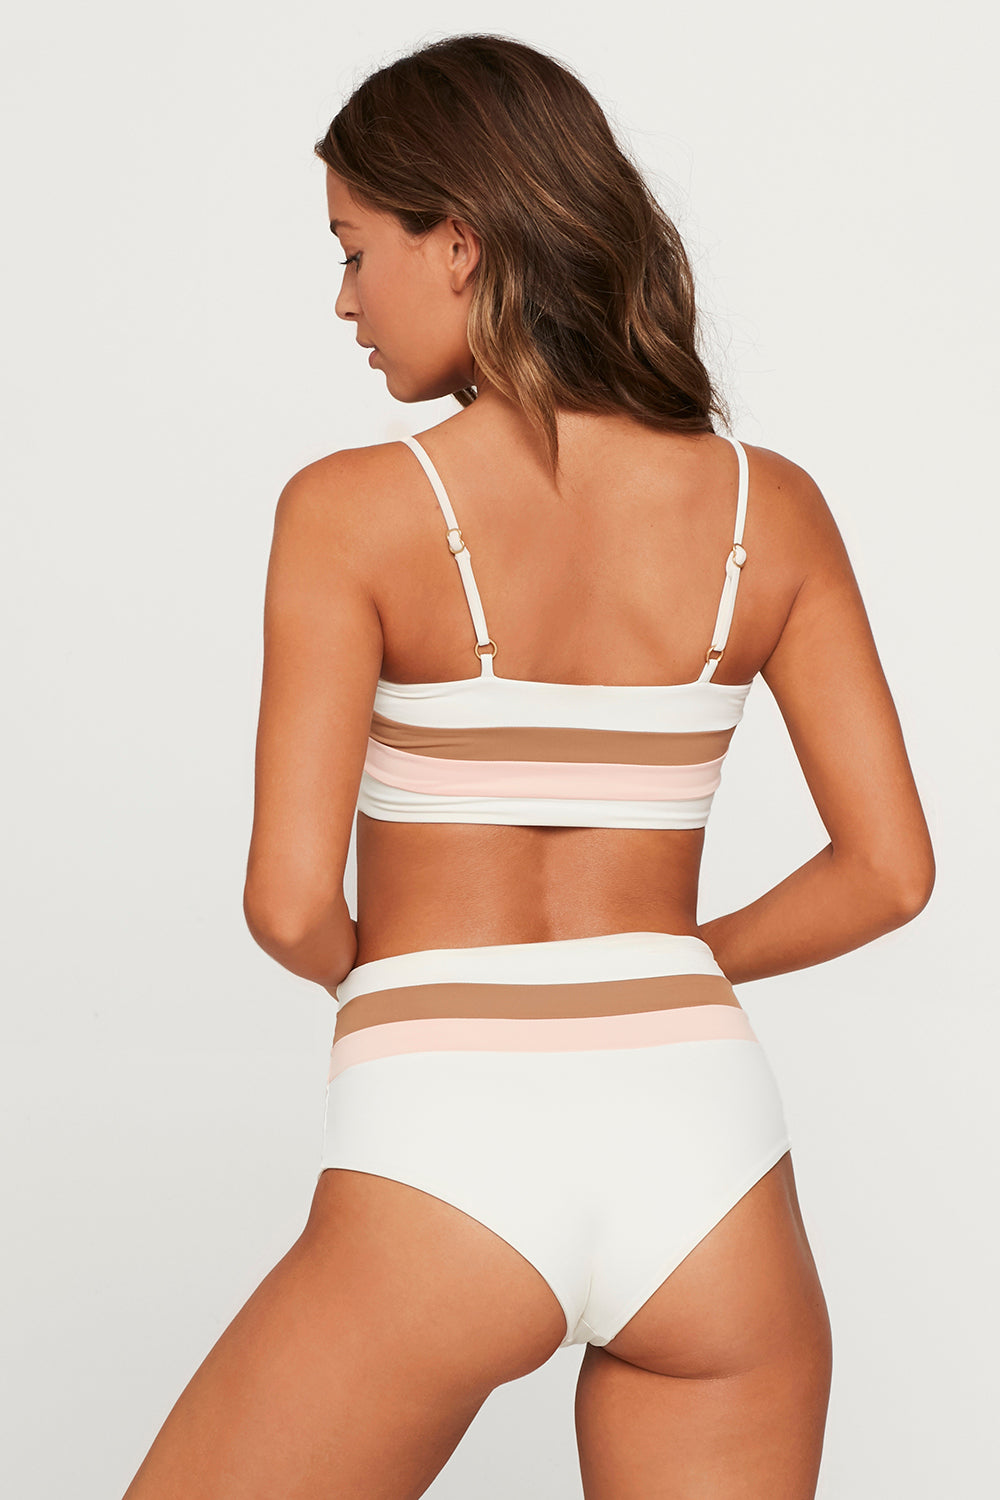 LSpace Portia Stripe Bottom in Cream